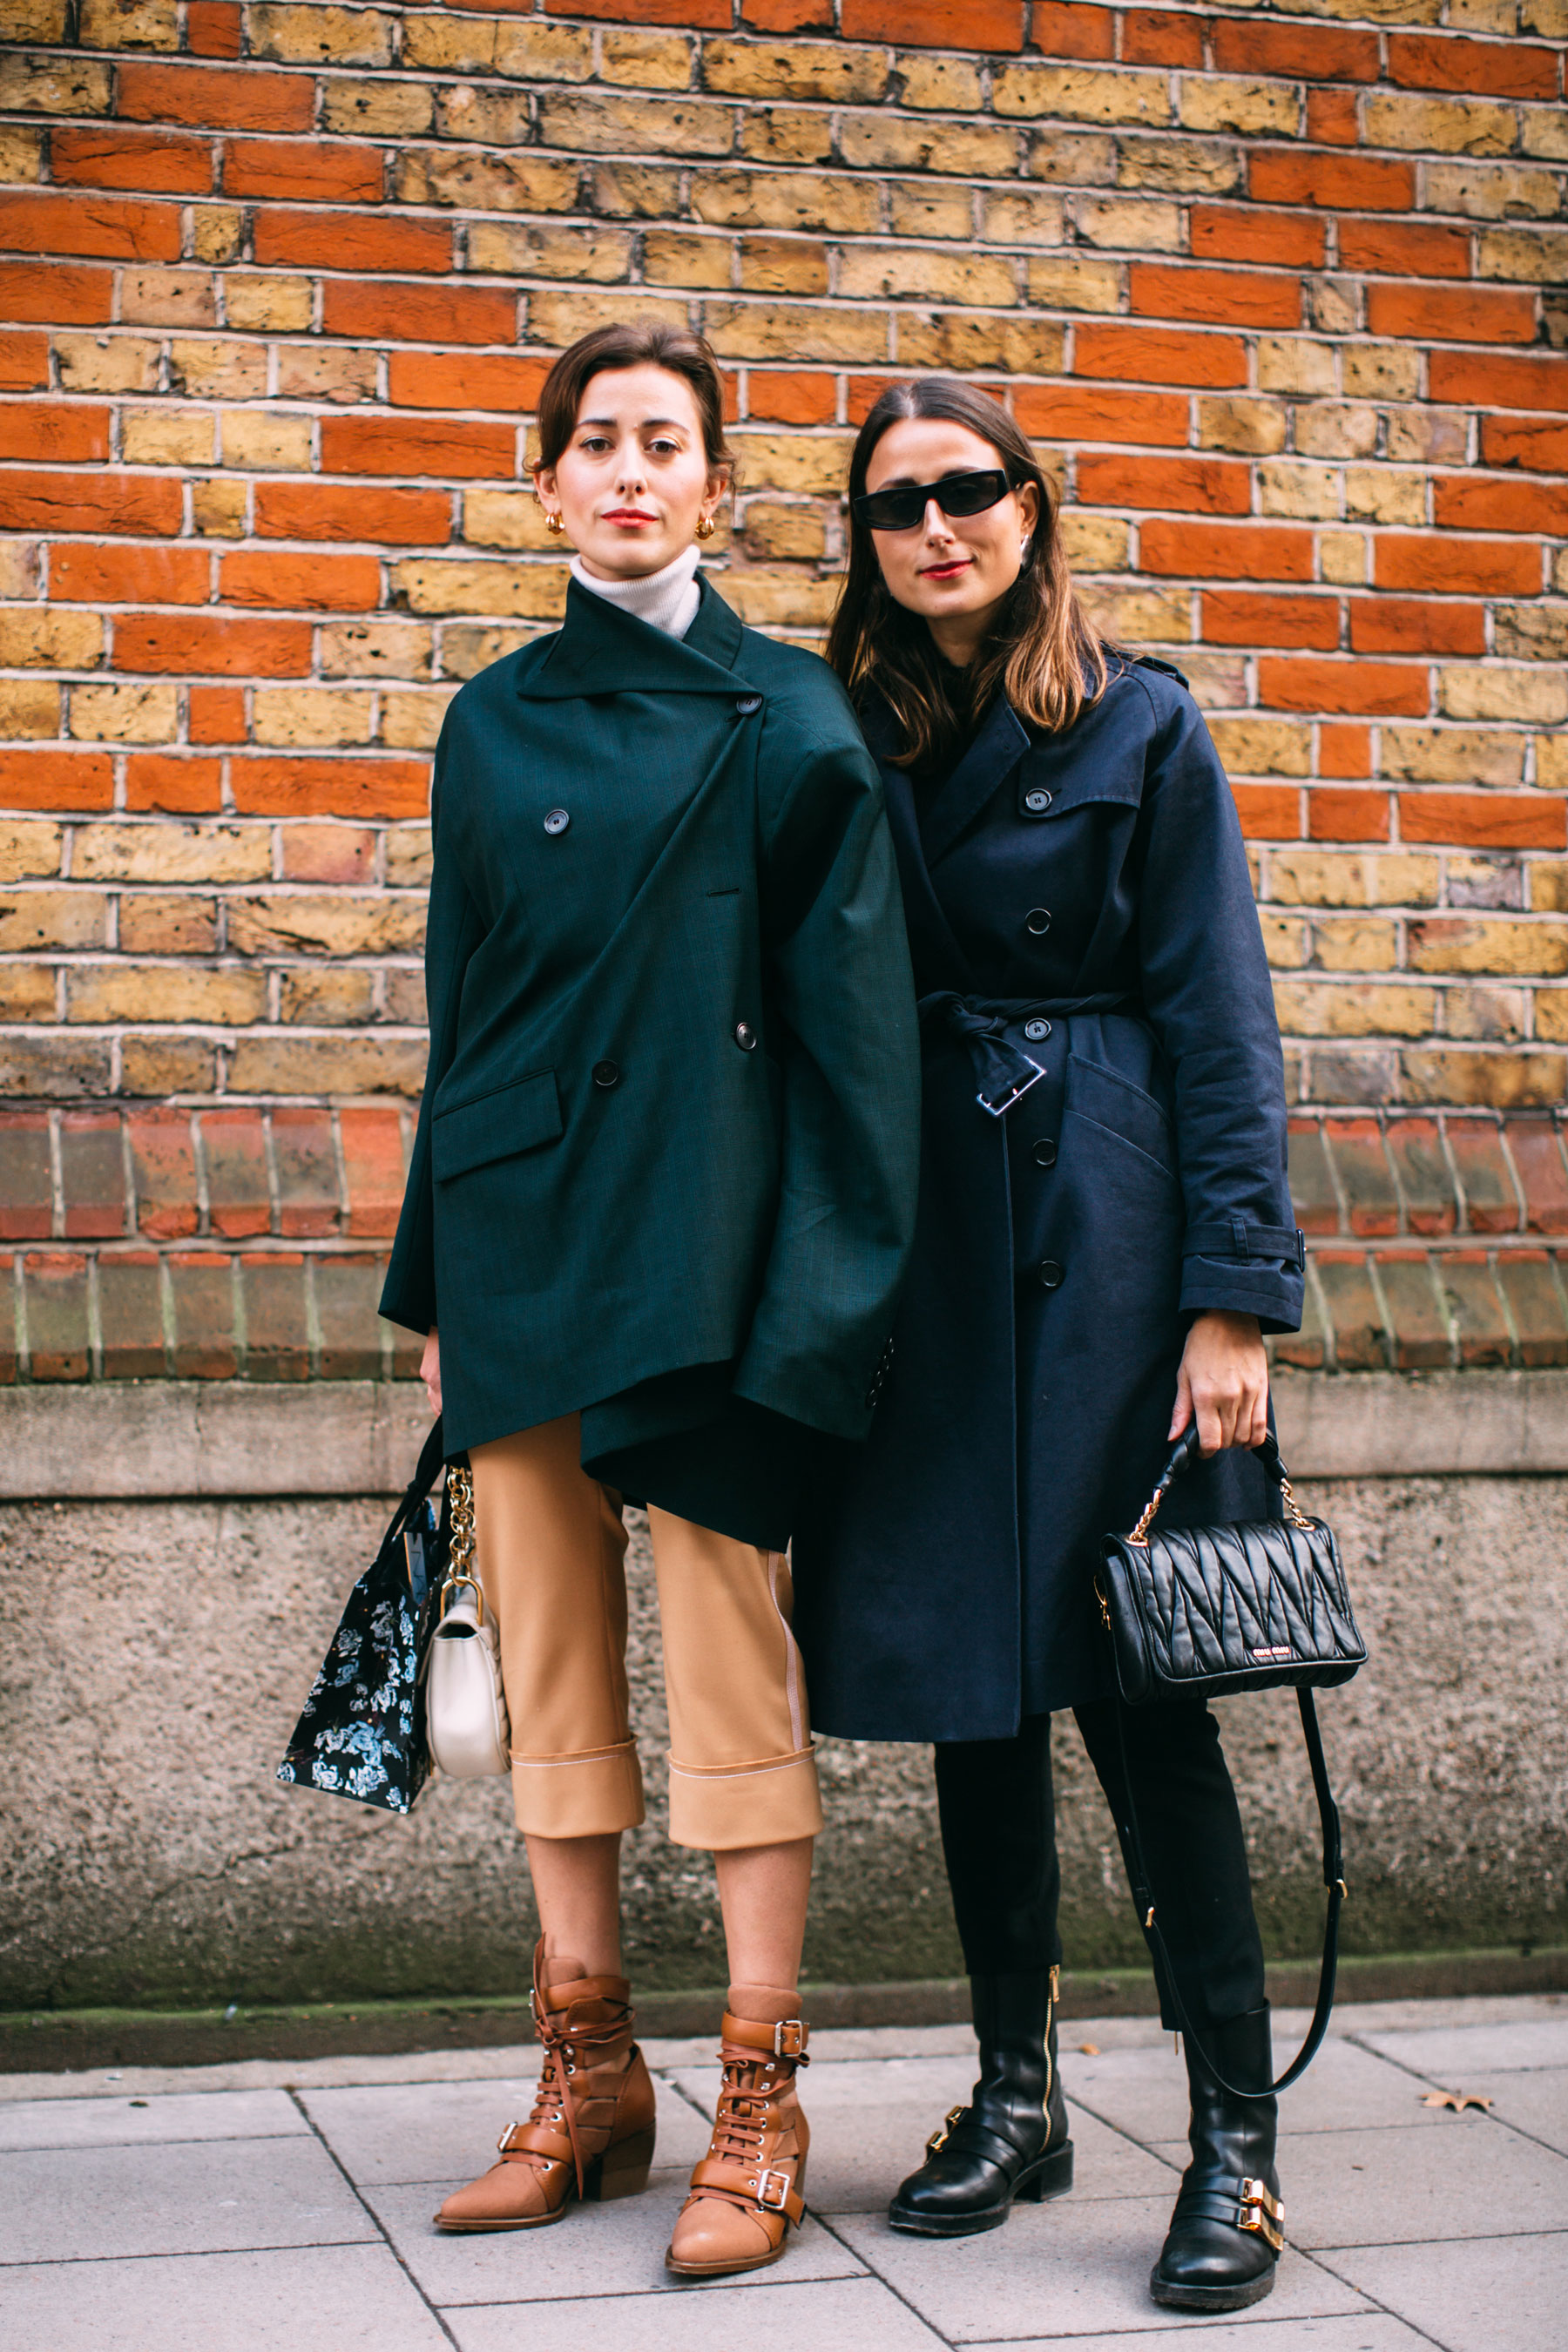 The Top 50 London Street Style Looks from Fall 2018